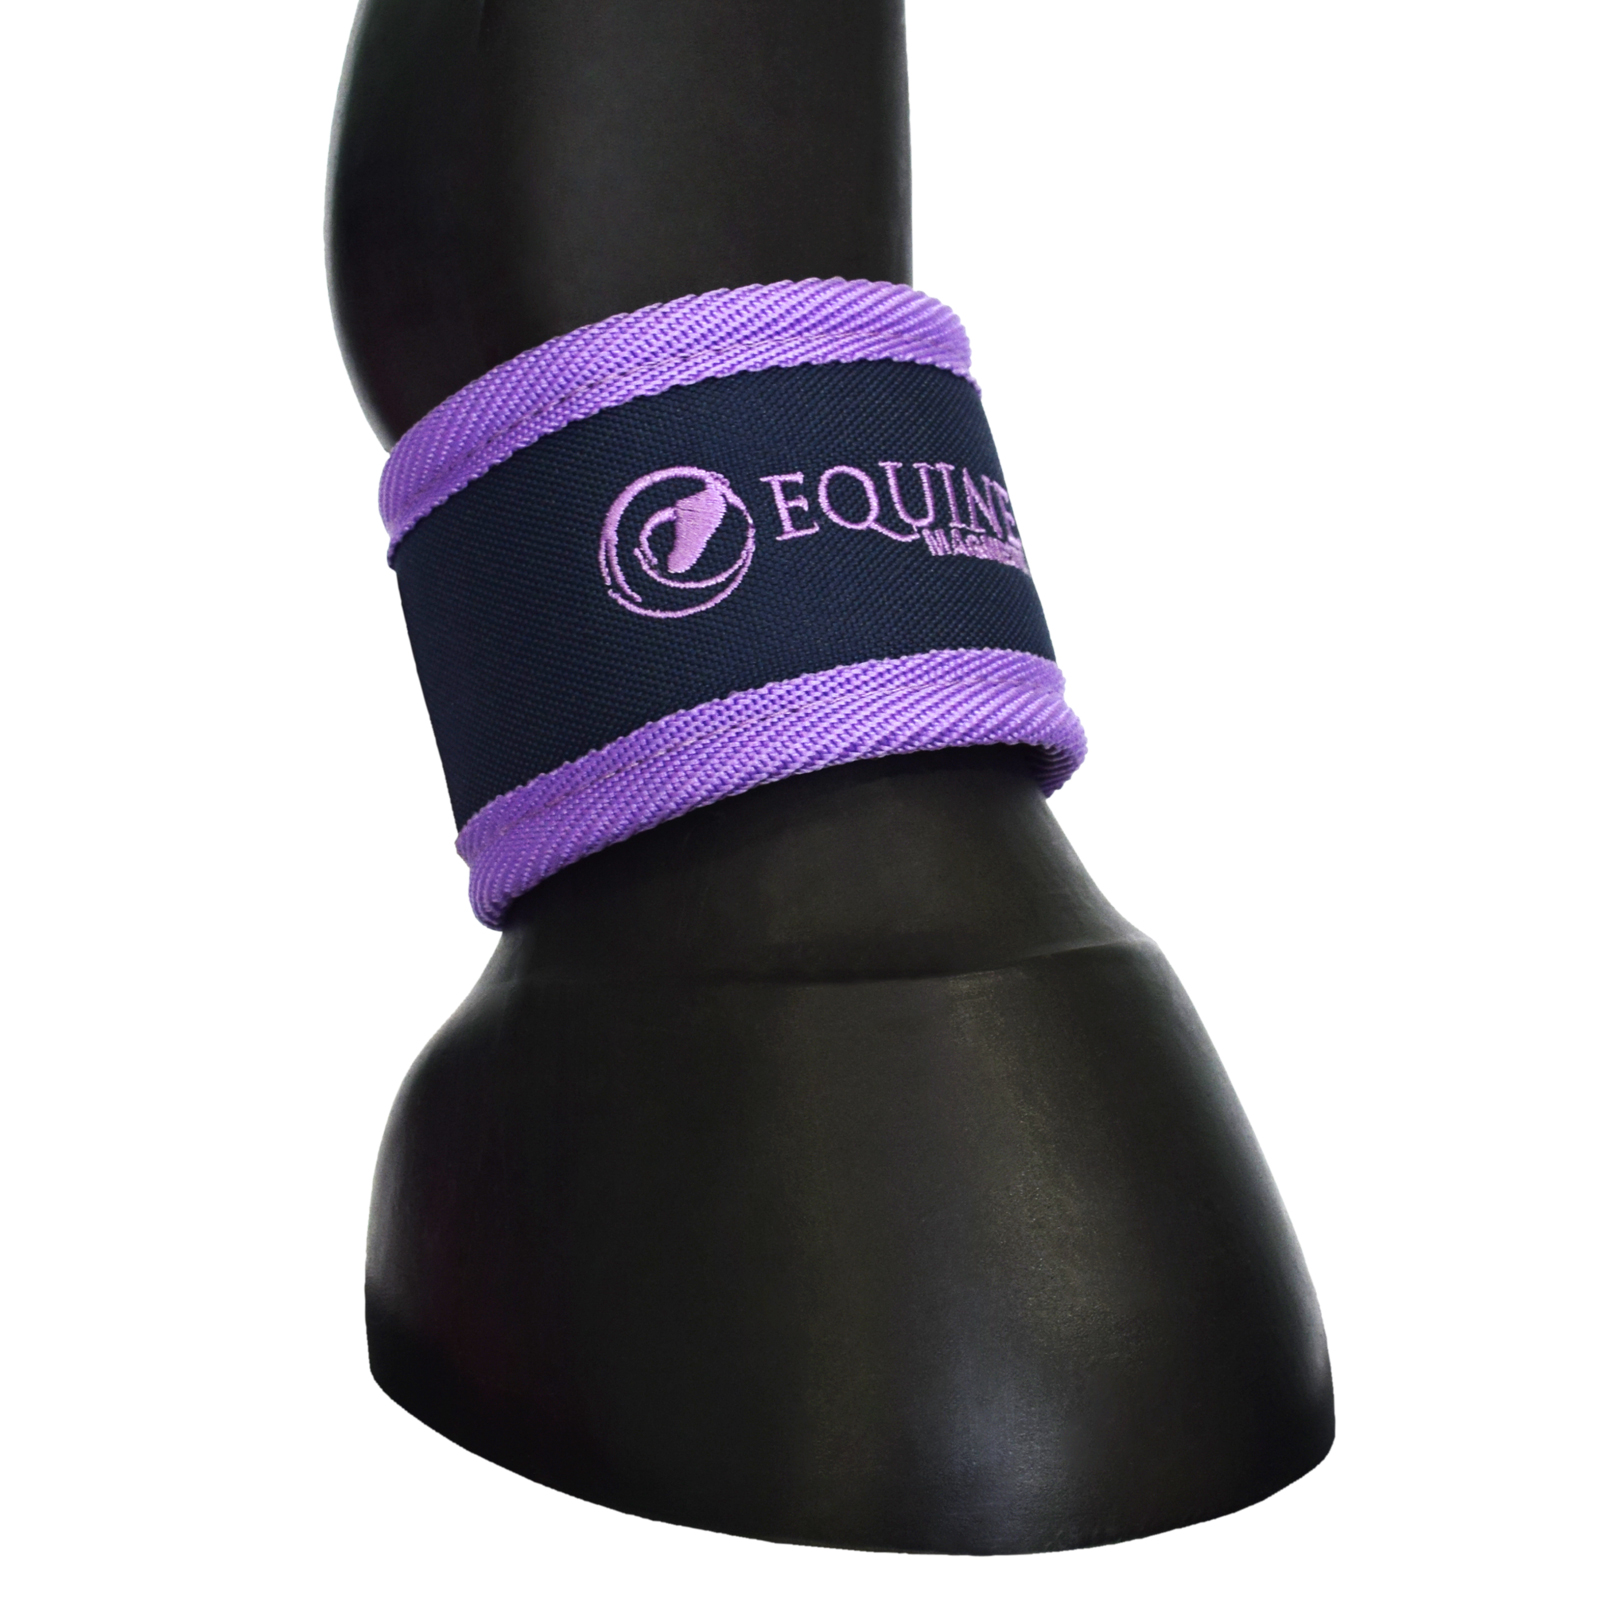 Magnetic horse ankle boots in purple by Equine Magnetix